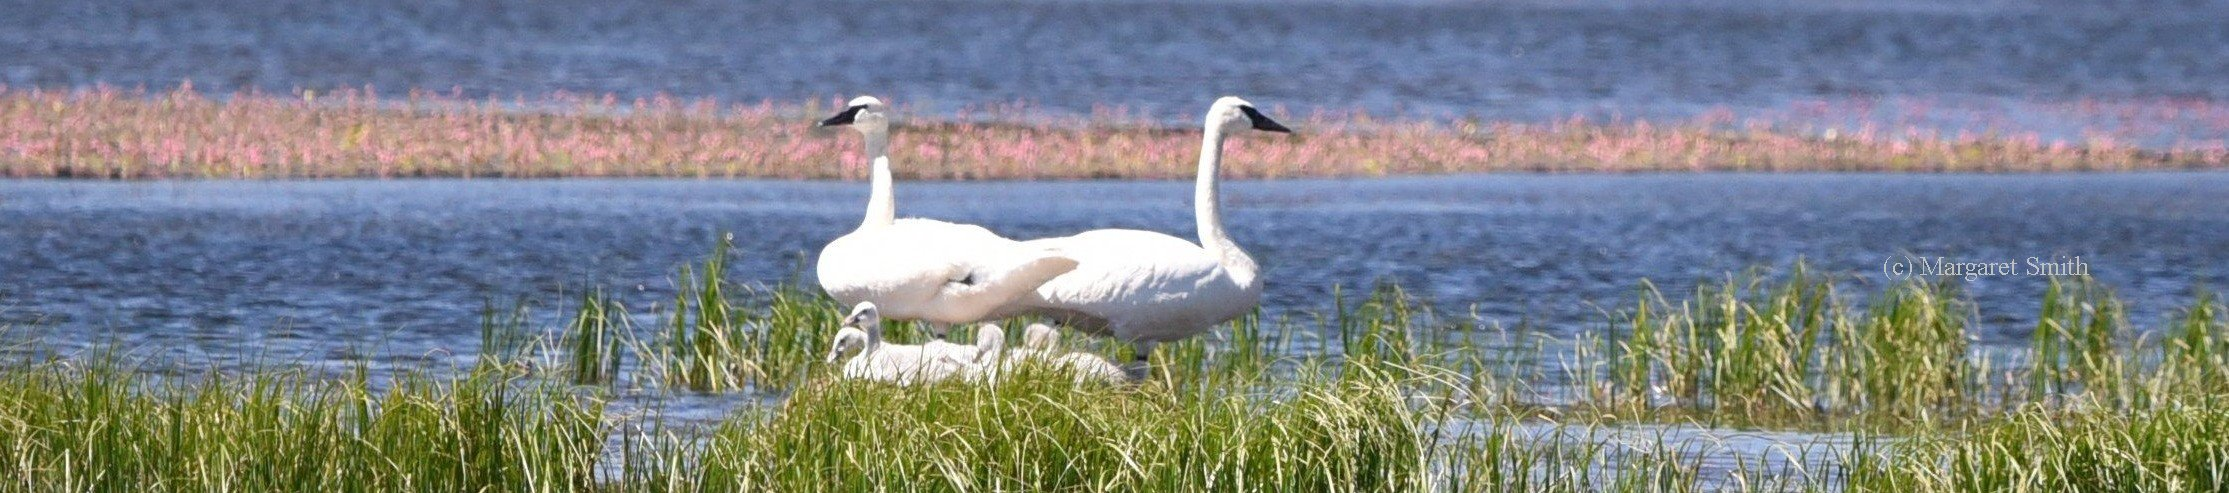 Your Swan Gift Shop purchase helps support swan conservation programs of The Trumpeter Swan Society